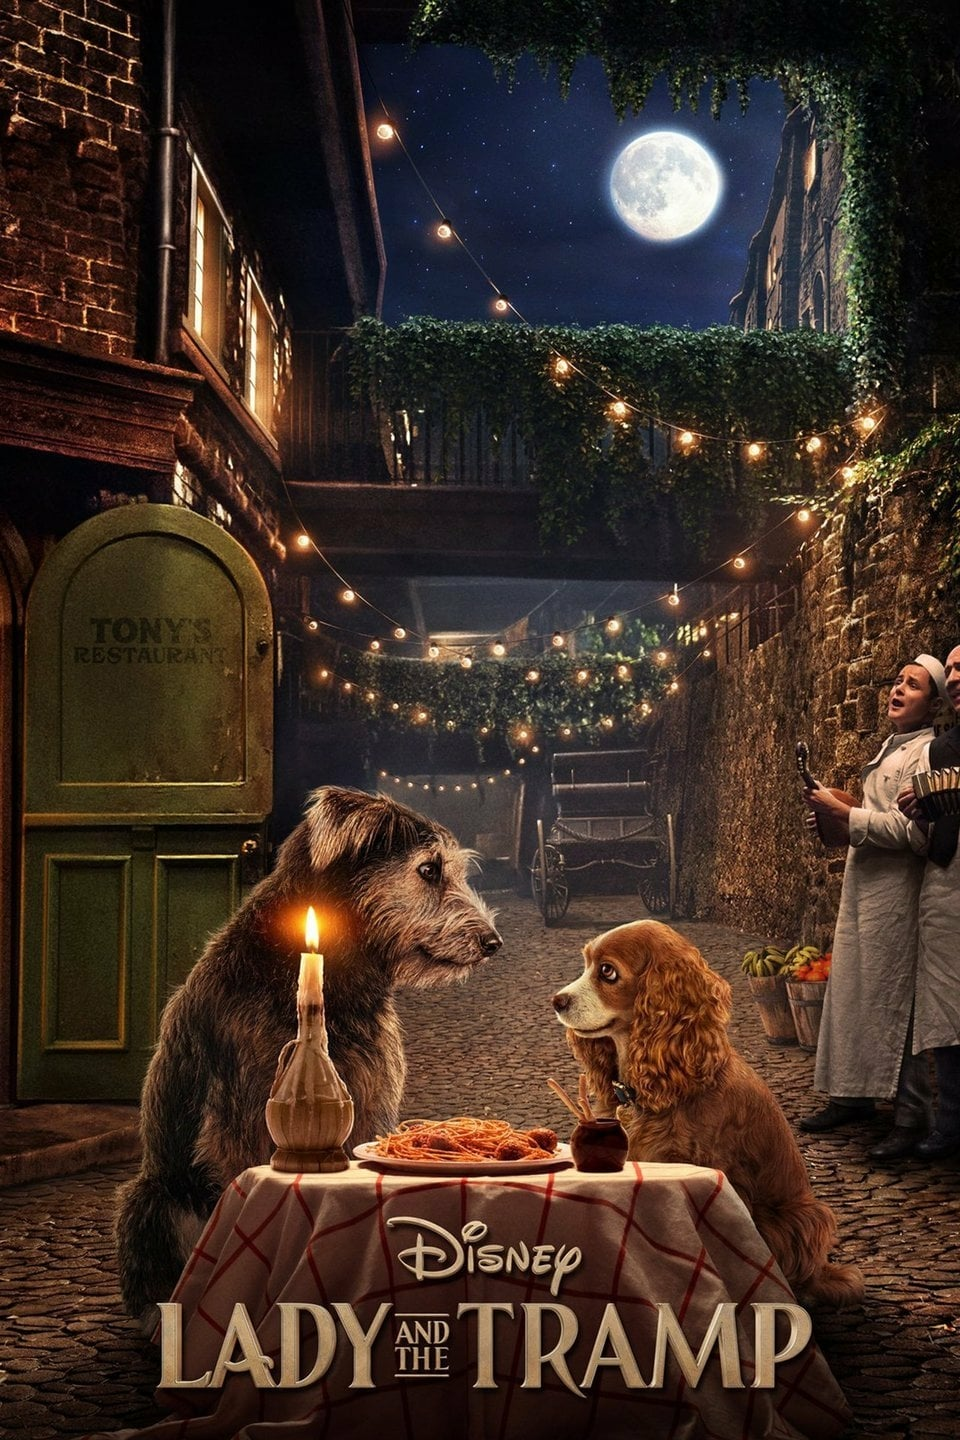 Lady and the Tramp 2019 movie review